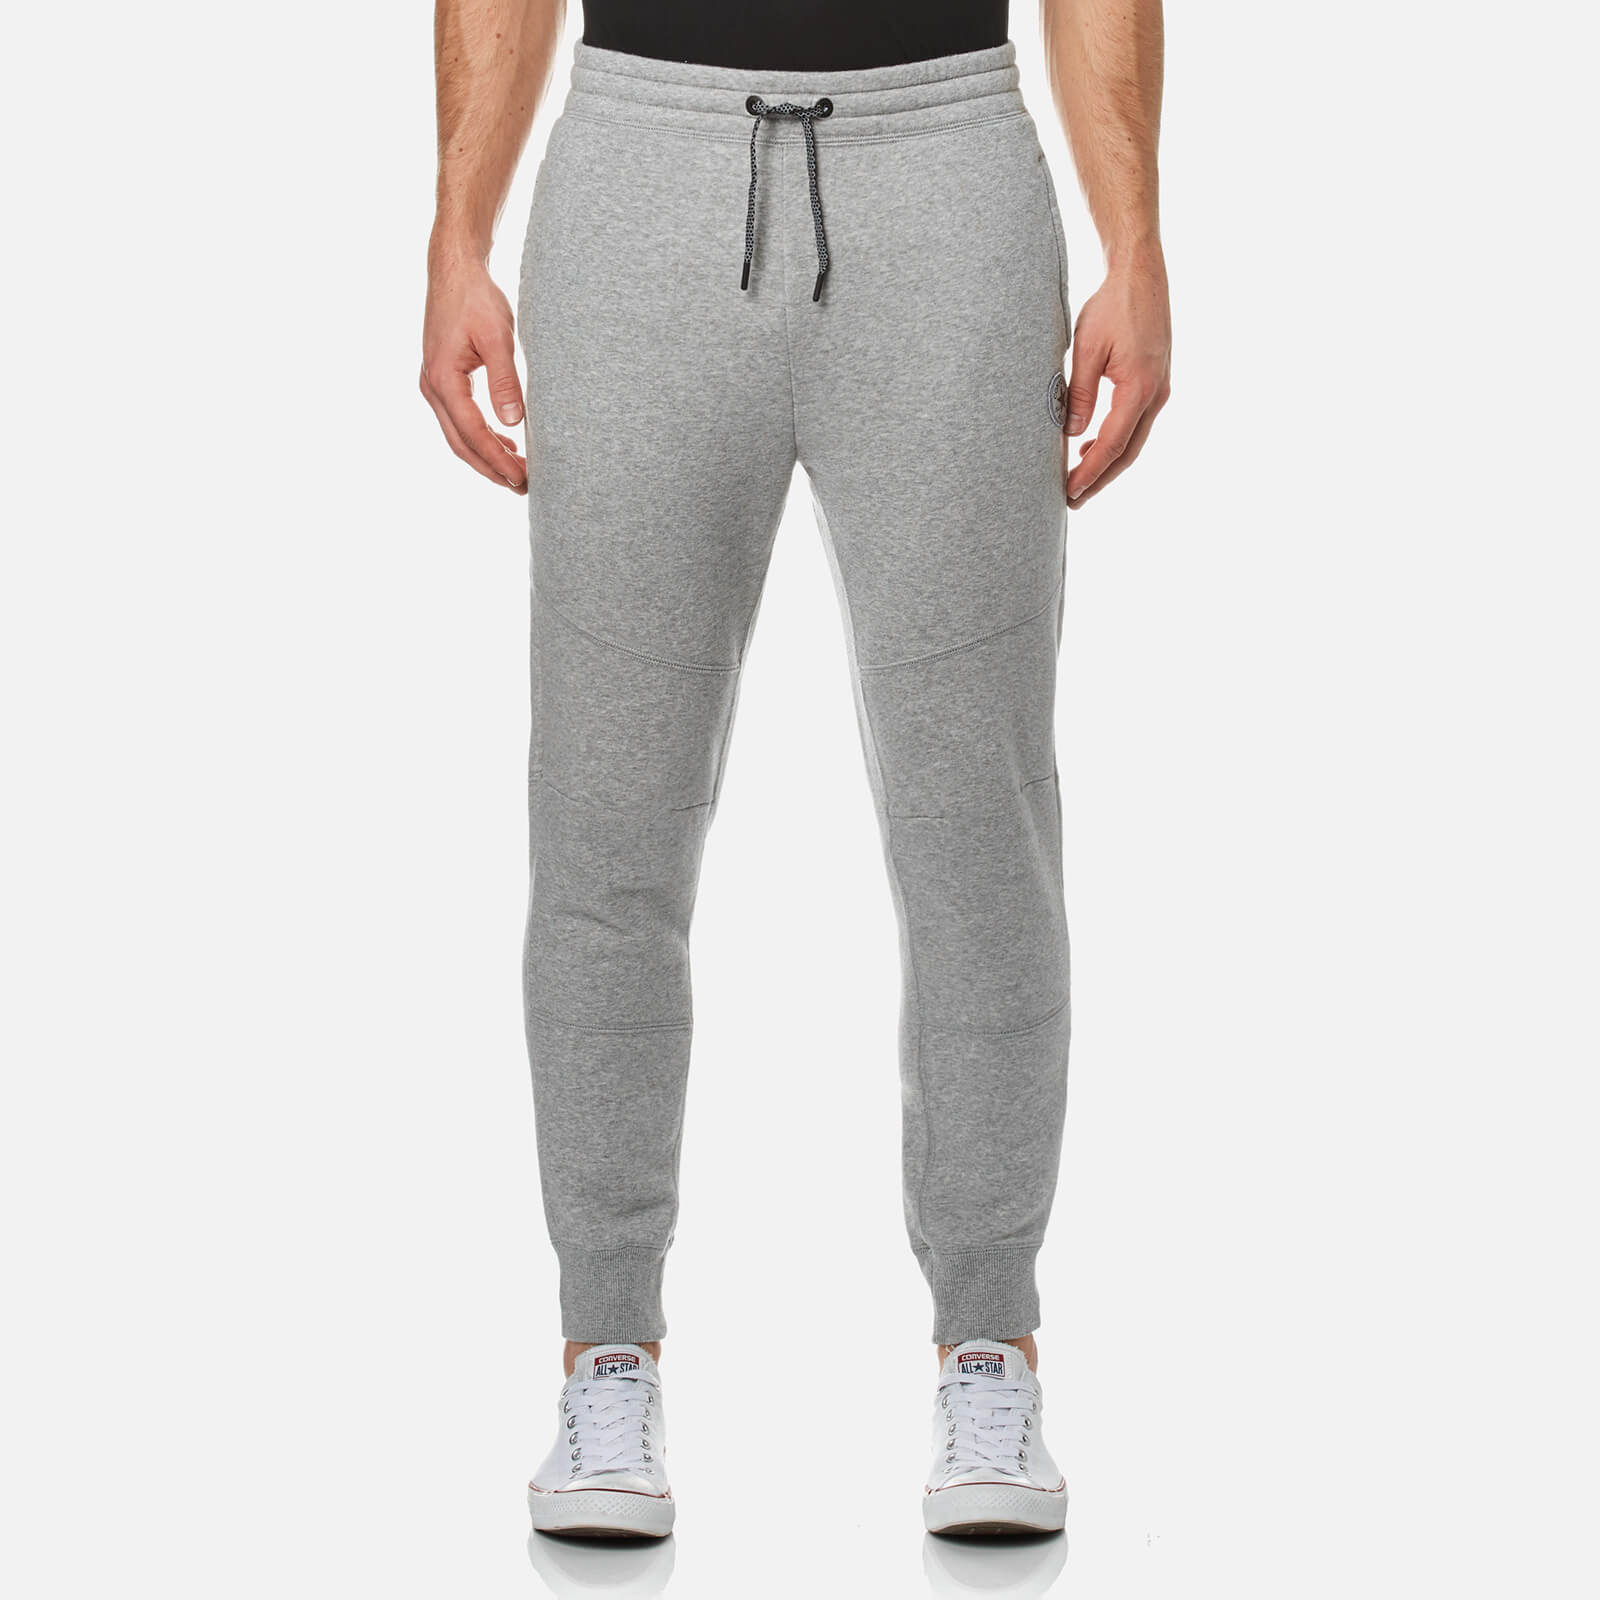 9dade668899d Converse Men s Core Reflective Panel Joggers - Vintage Grey Heather  Clothing